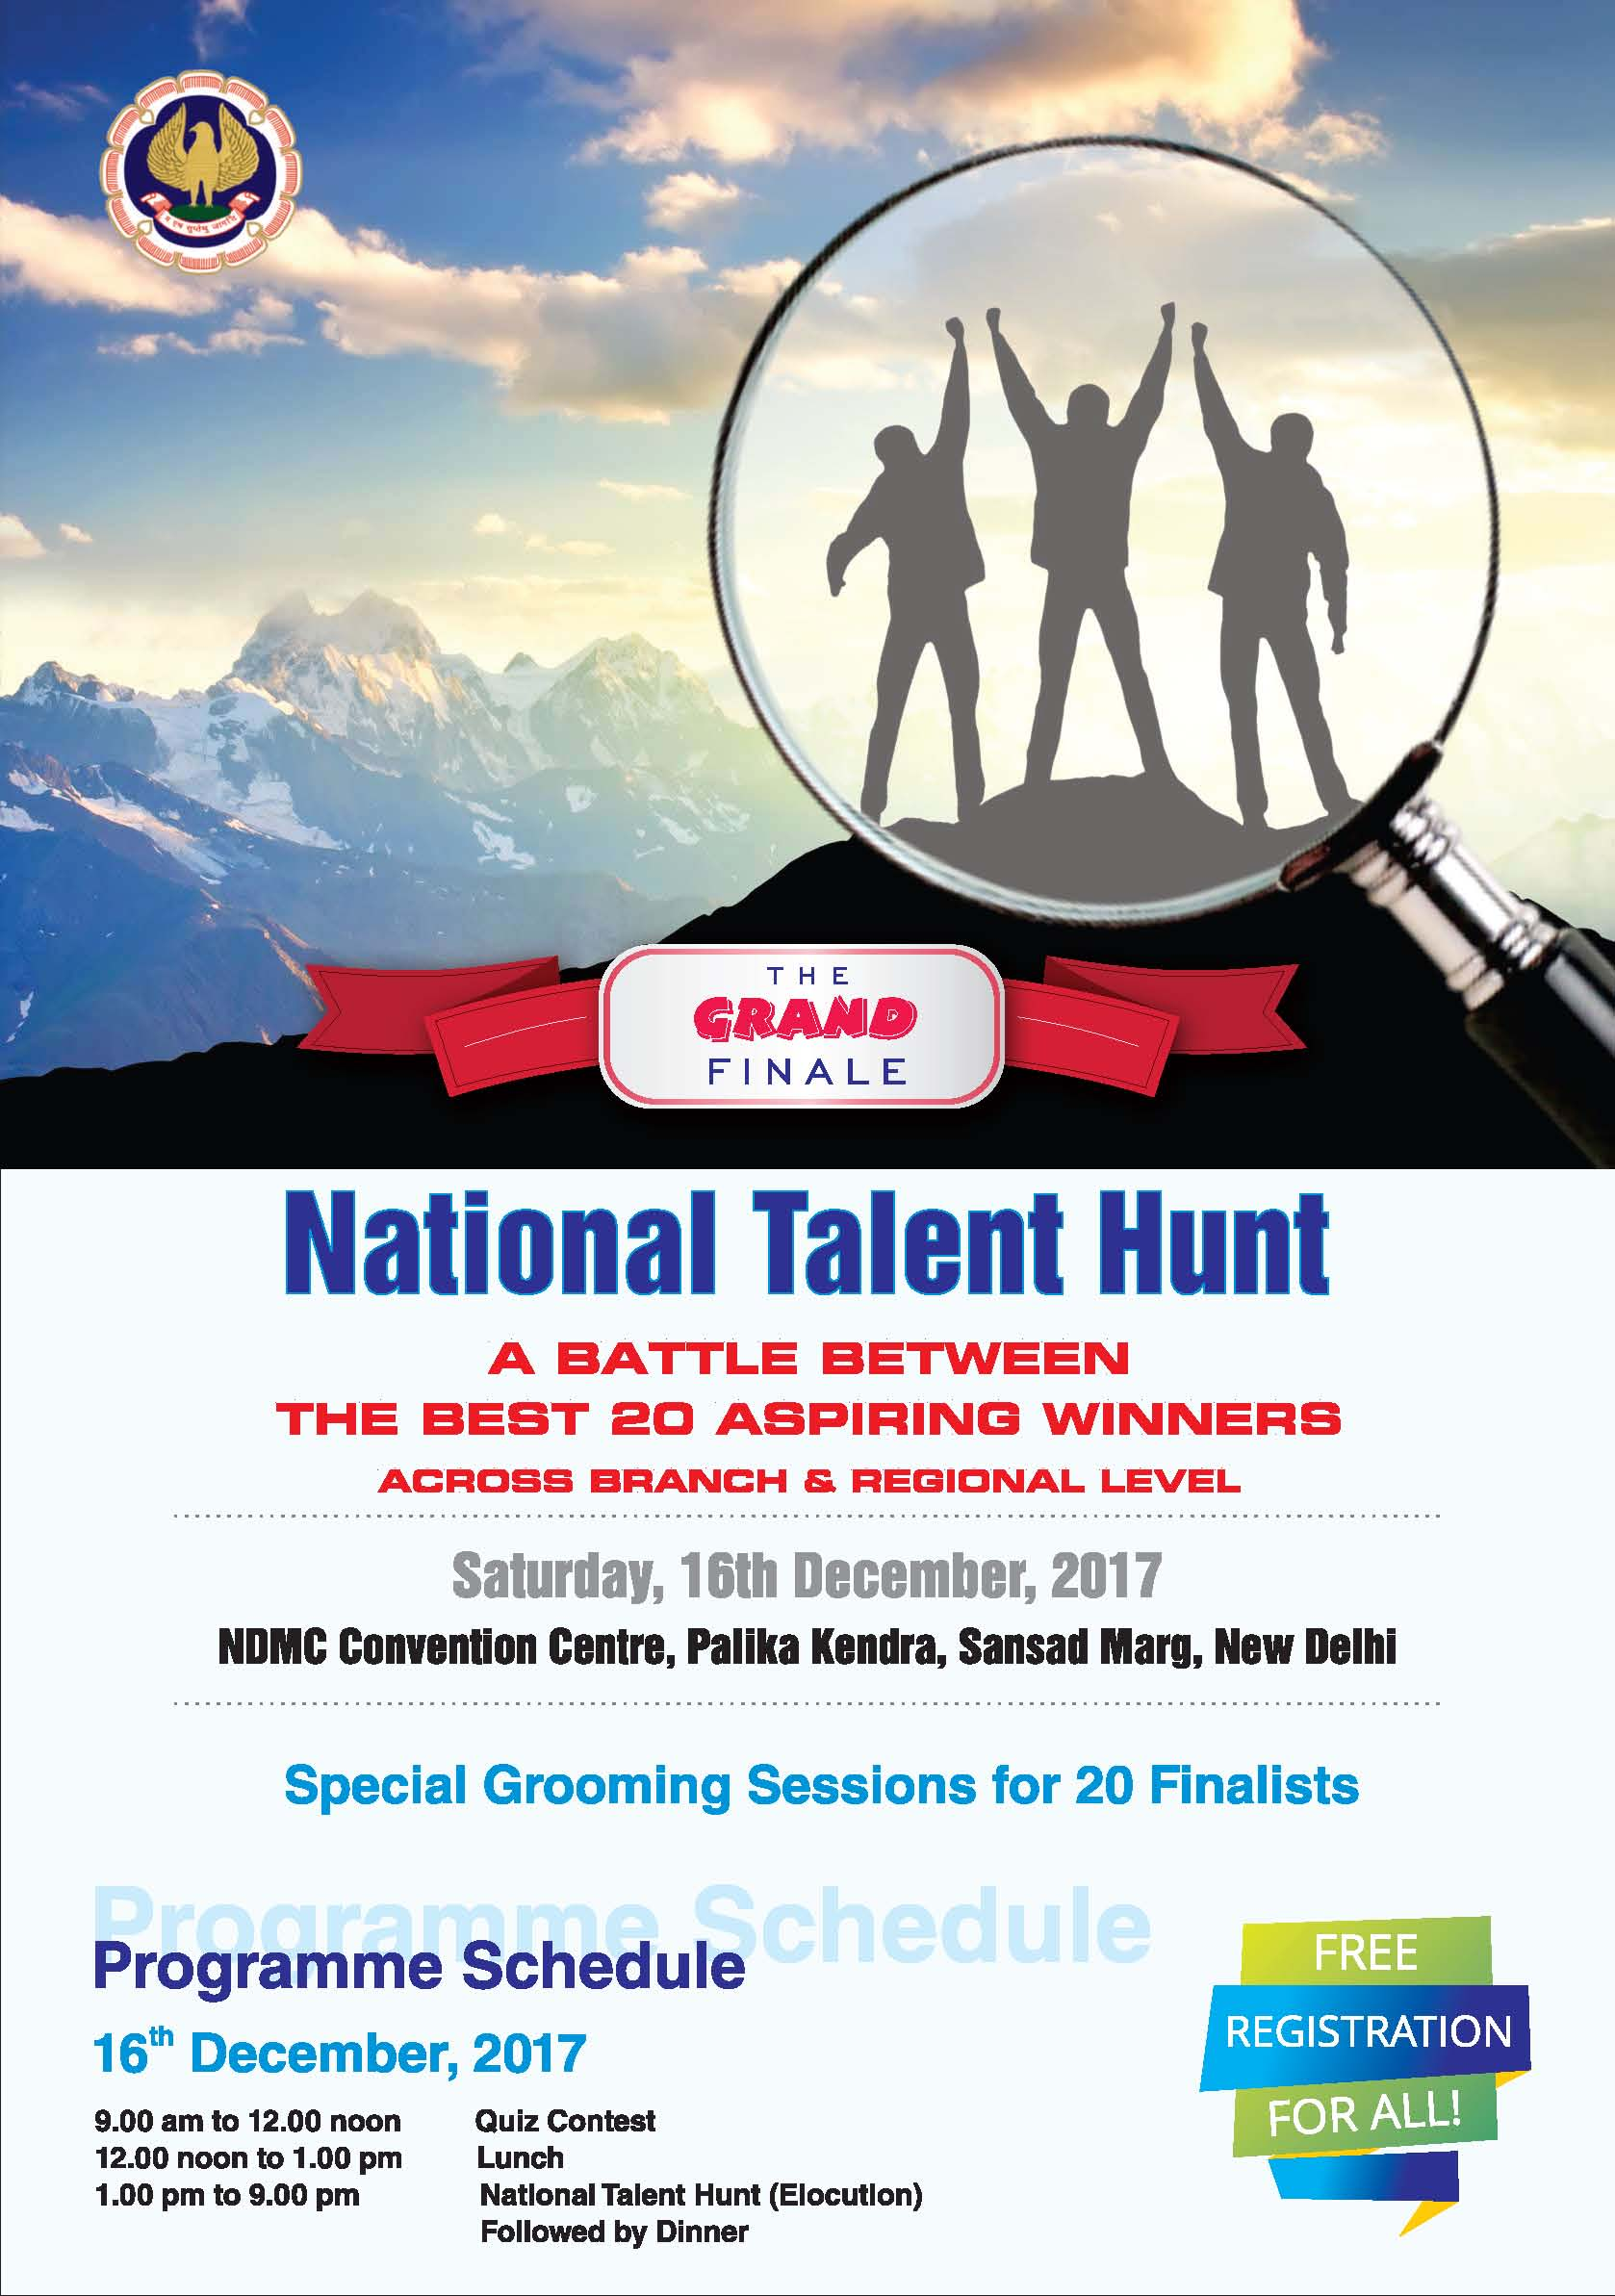 20 Budding Accountants qualify for Grand Finale of National Talent Hunt organized by ICAI